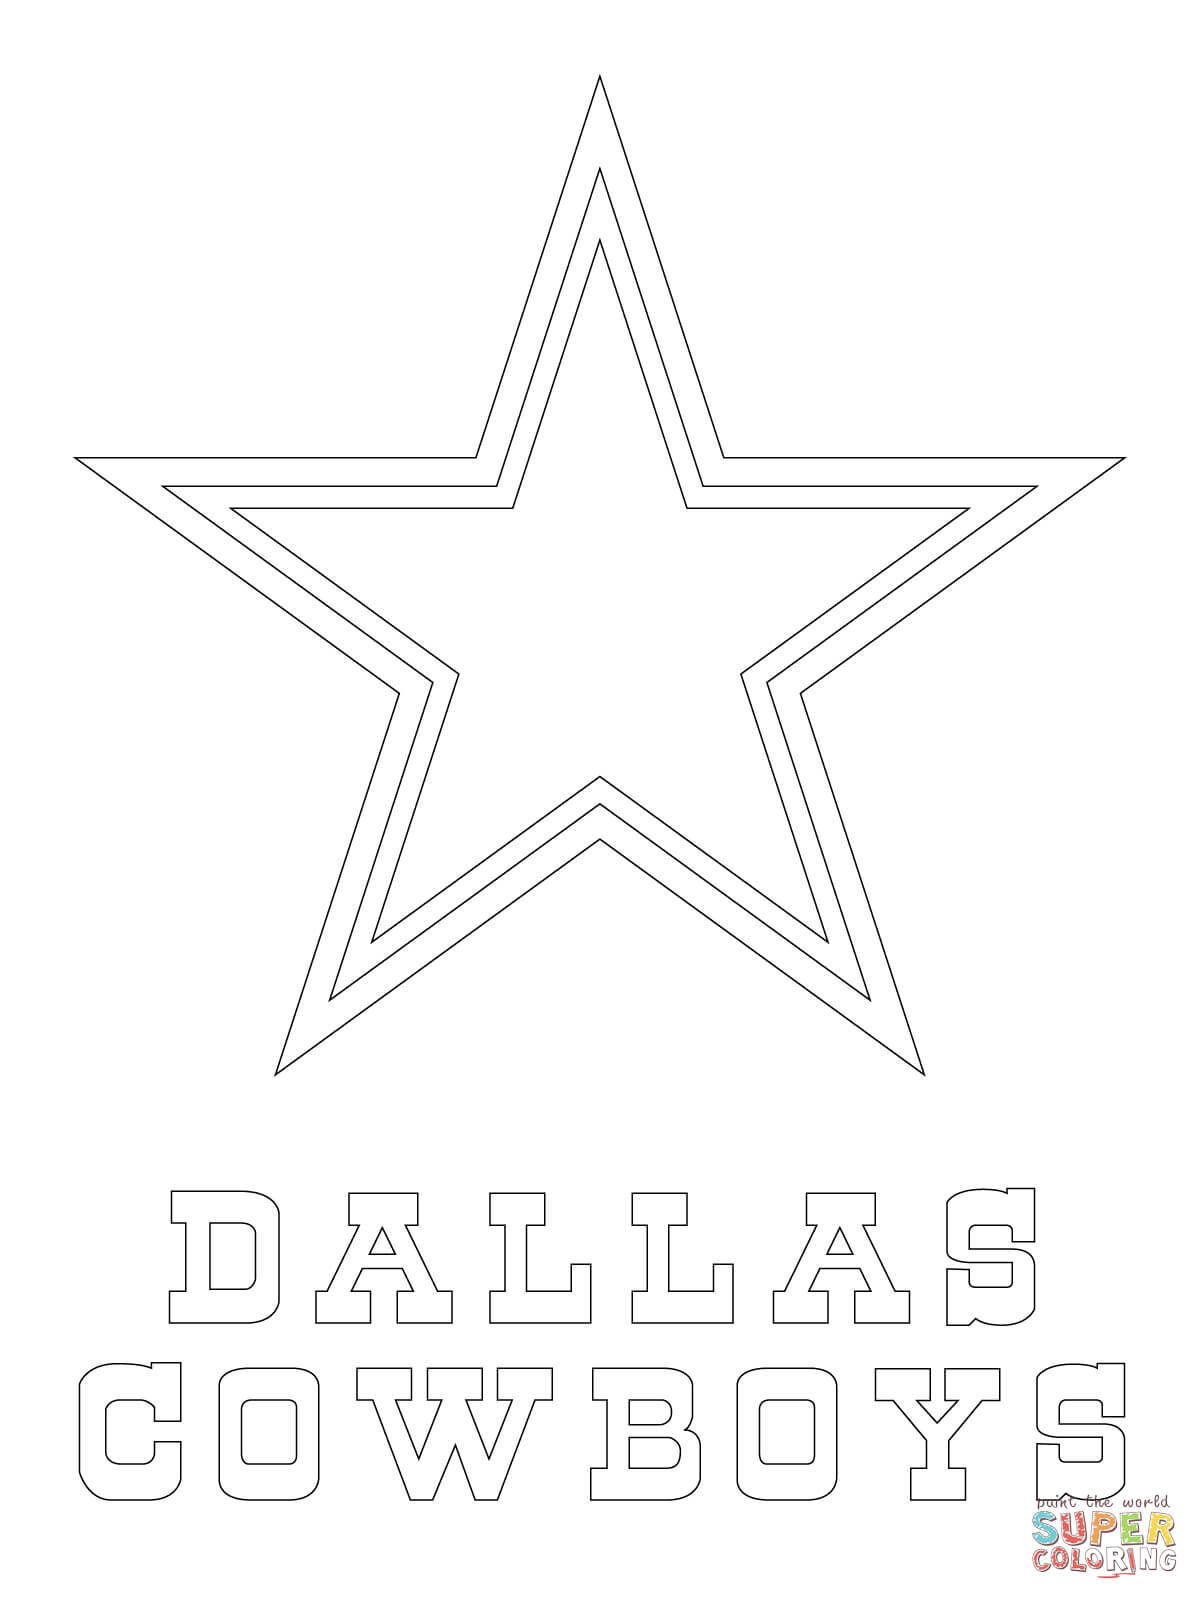 Dallas Cowboys Logo Coloring Page Free Printable Coloring Pages